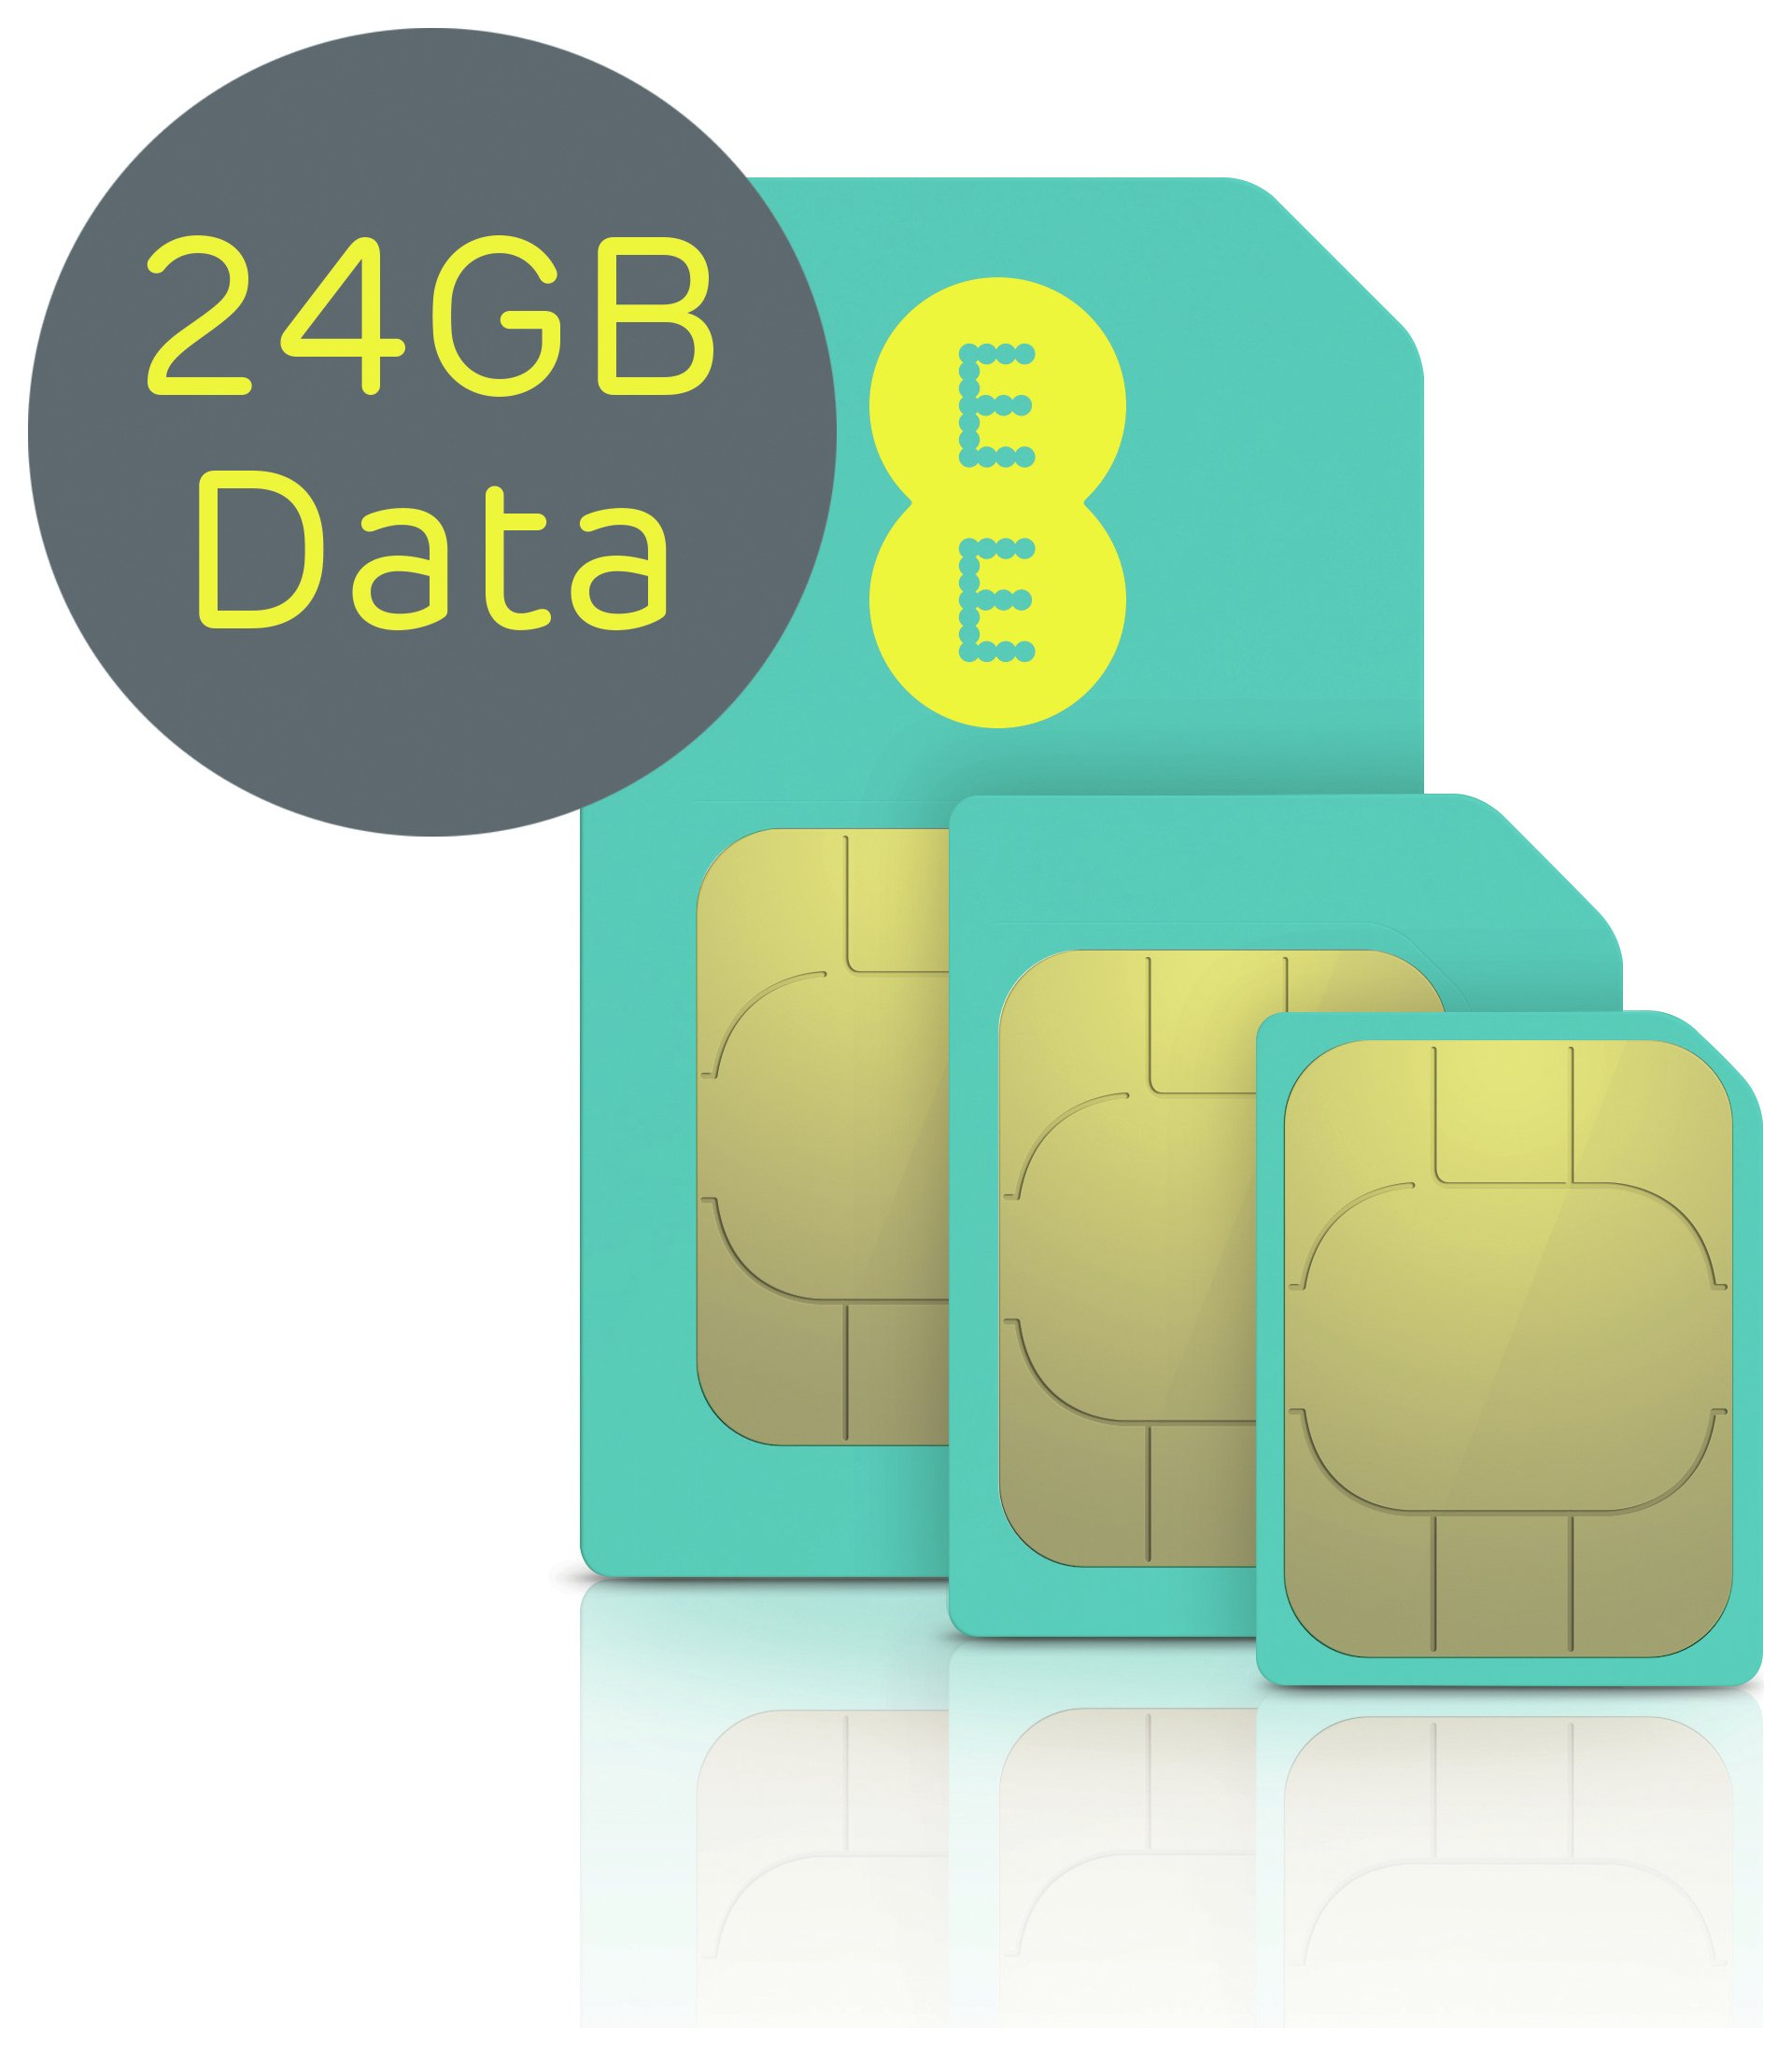 Image of EE 4G 24GB Pay As You Go Mobile Broadband Sim Card.